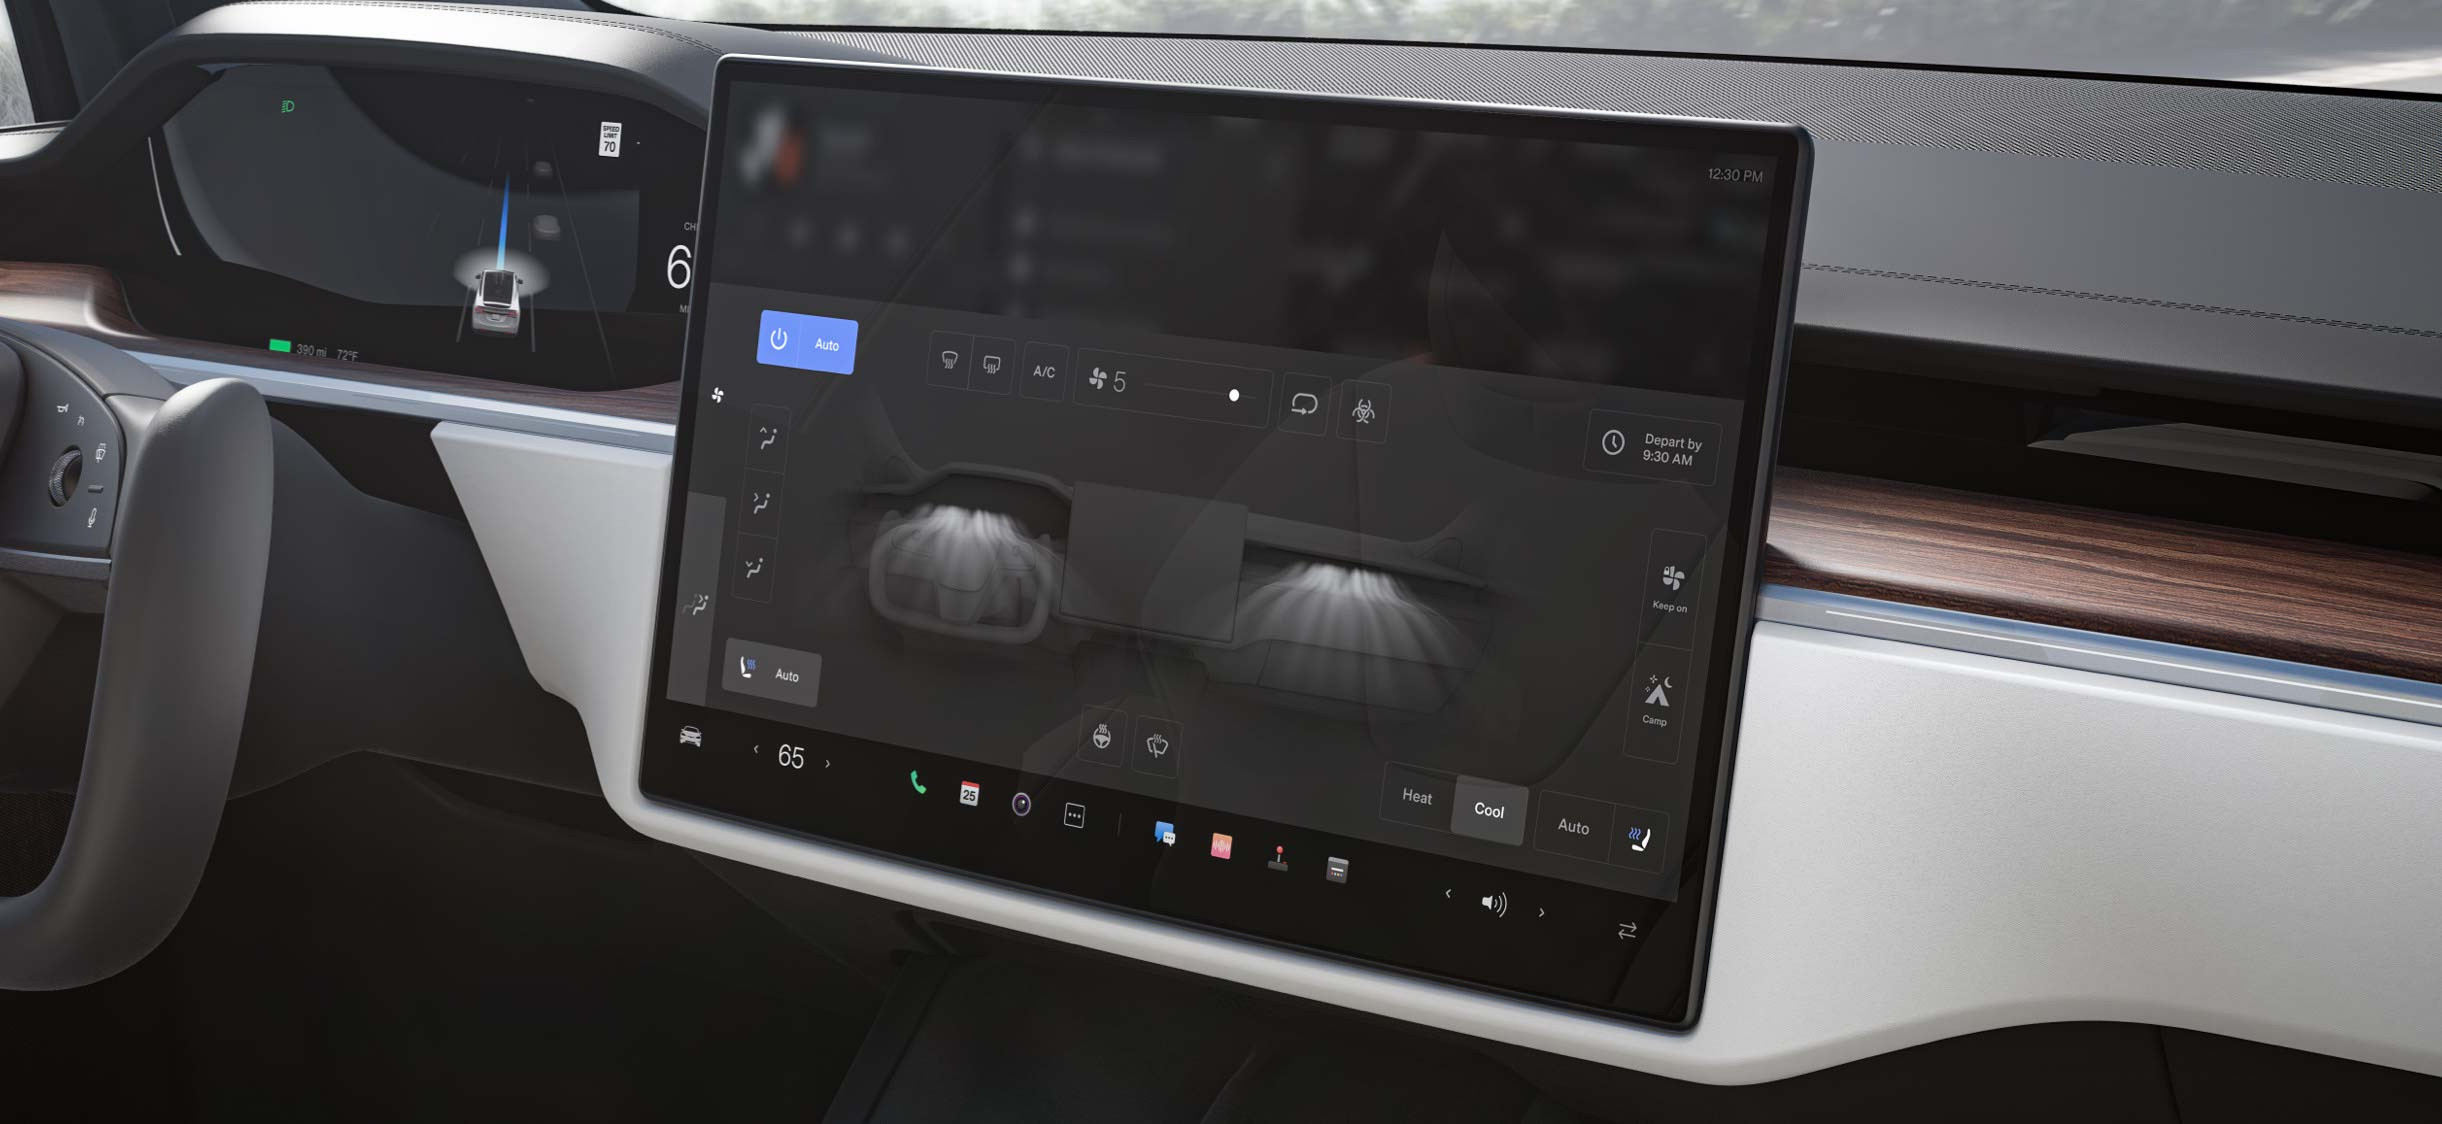 Model X center display with climate control